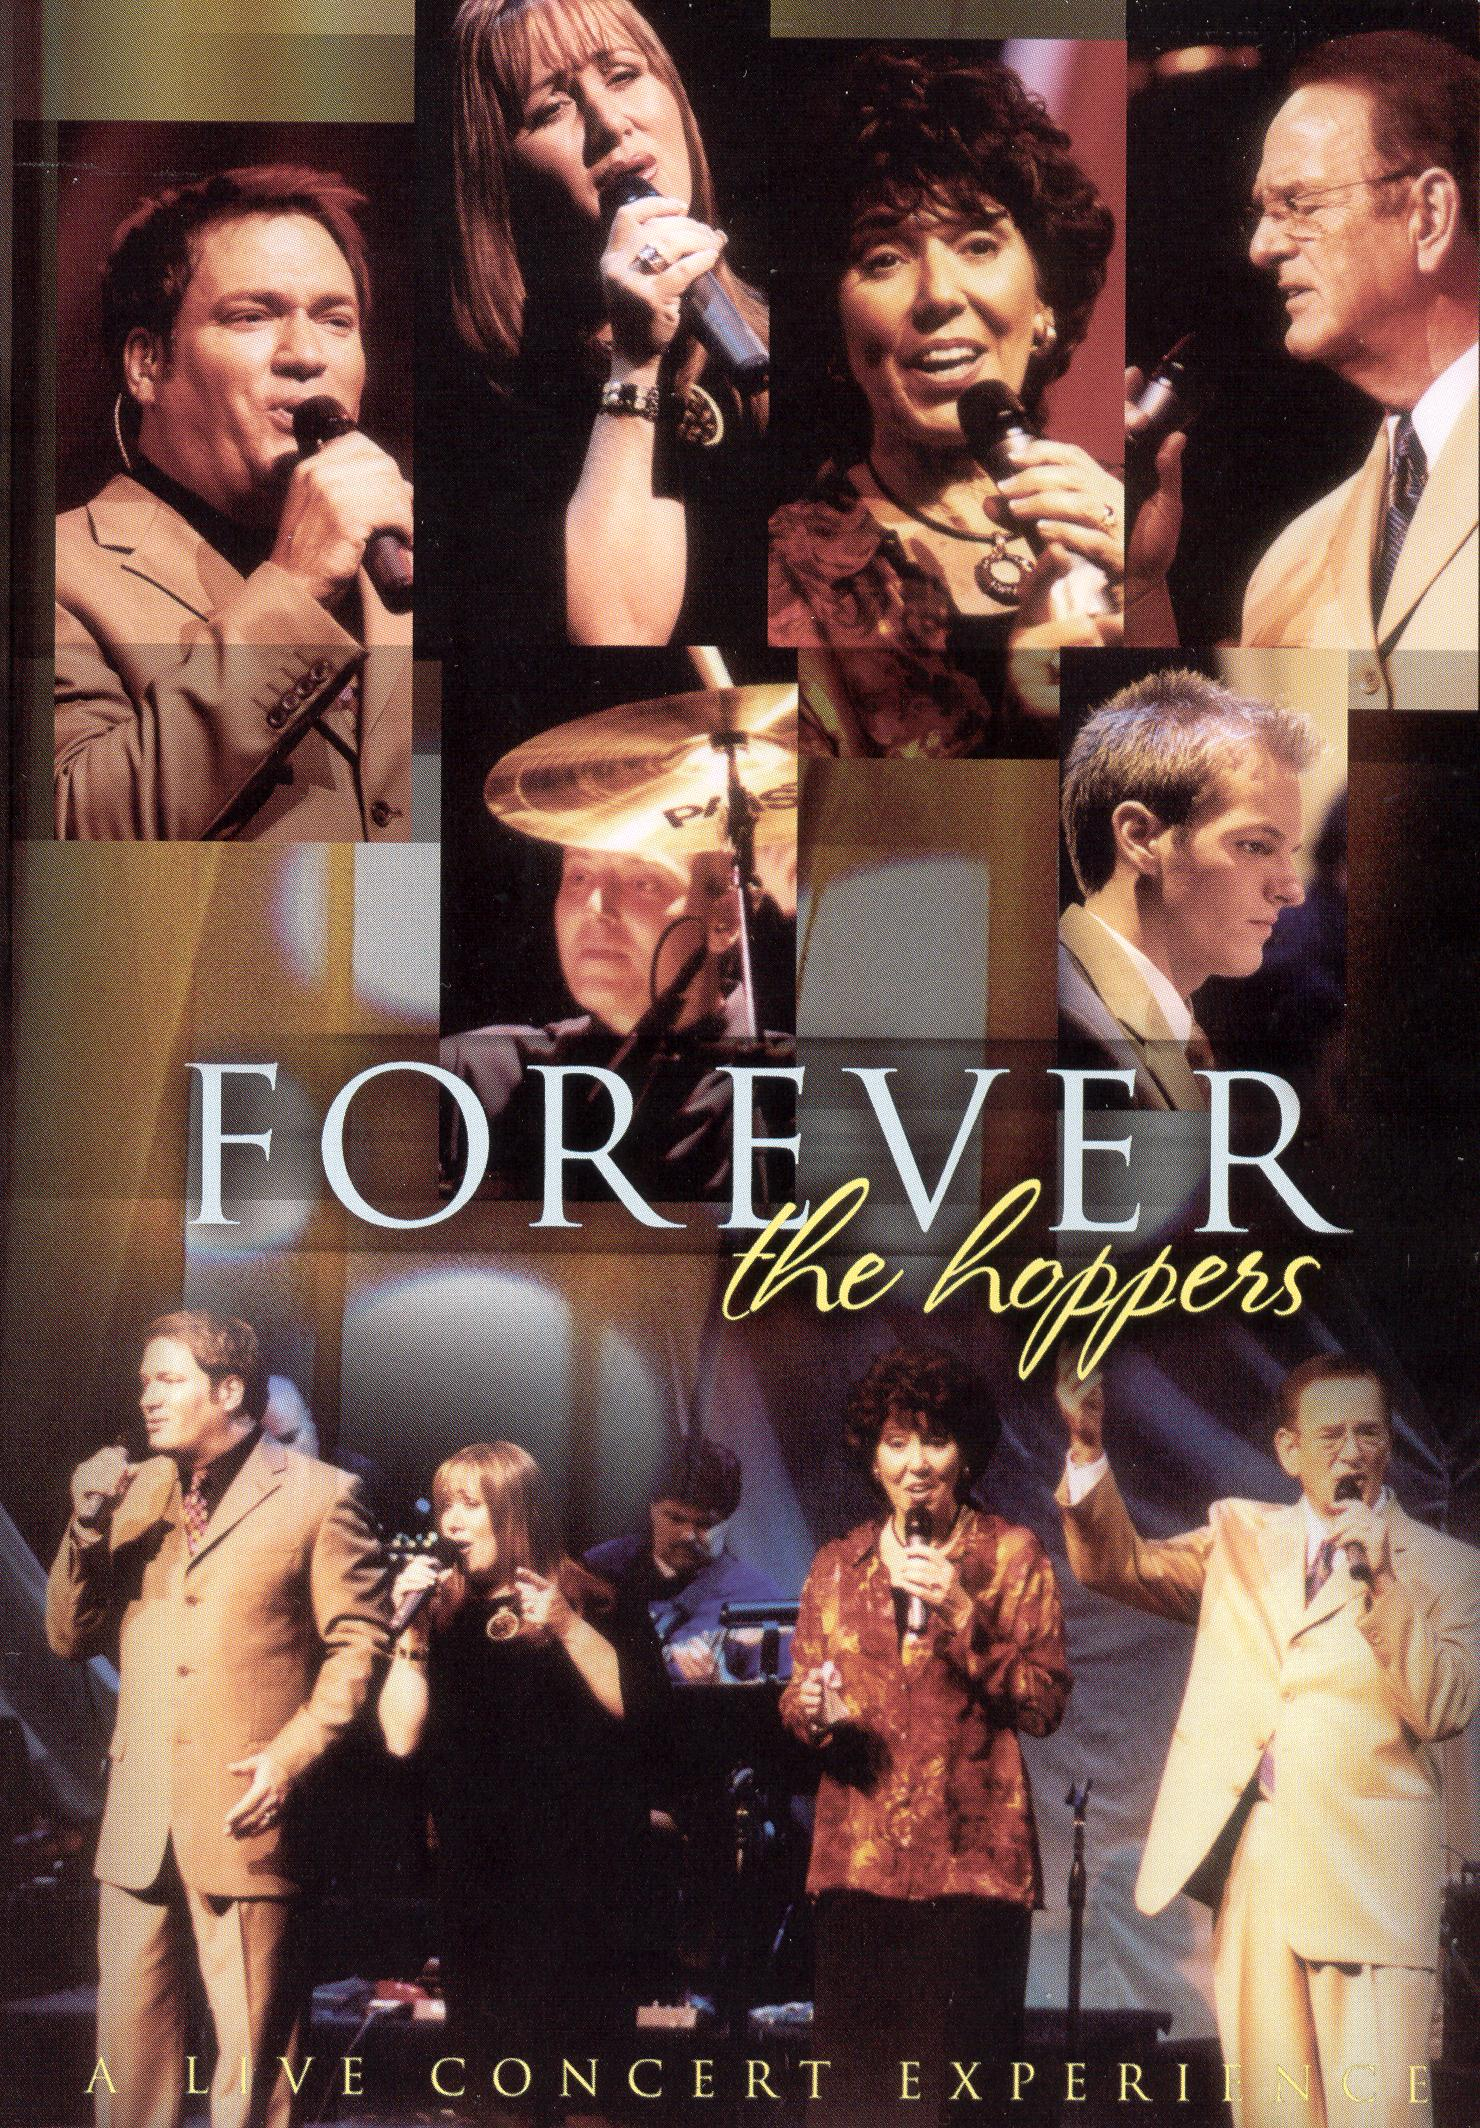 The Hoppers: Forever